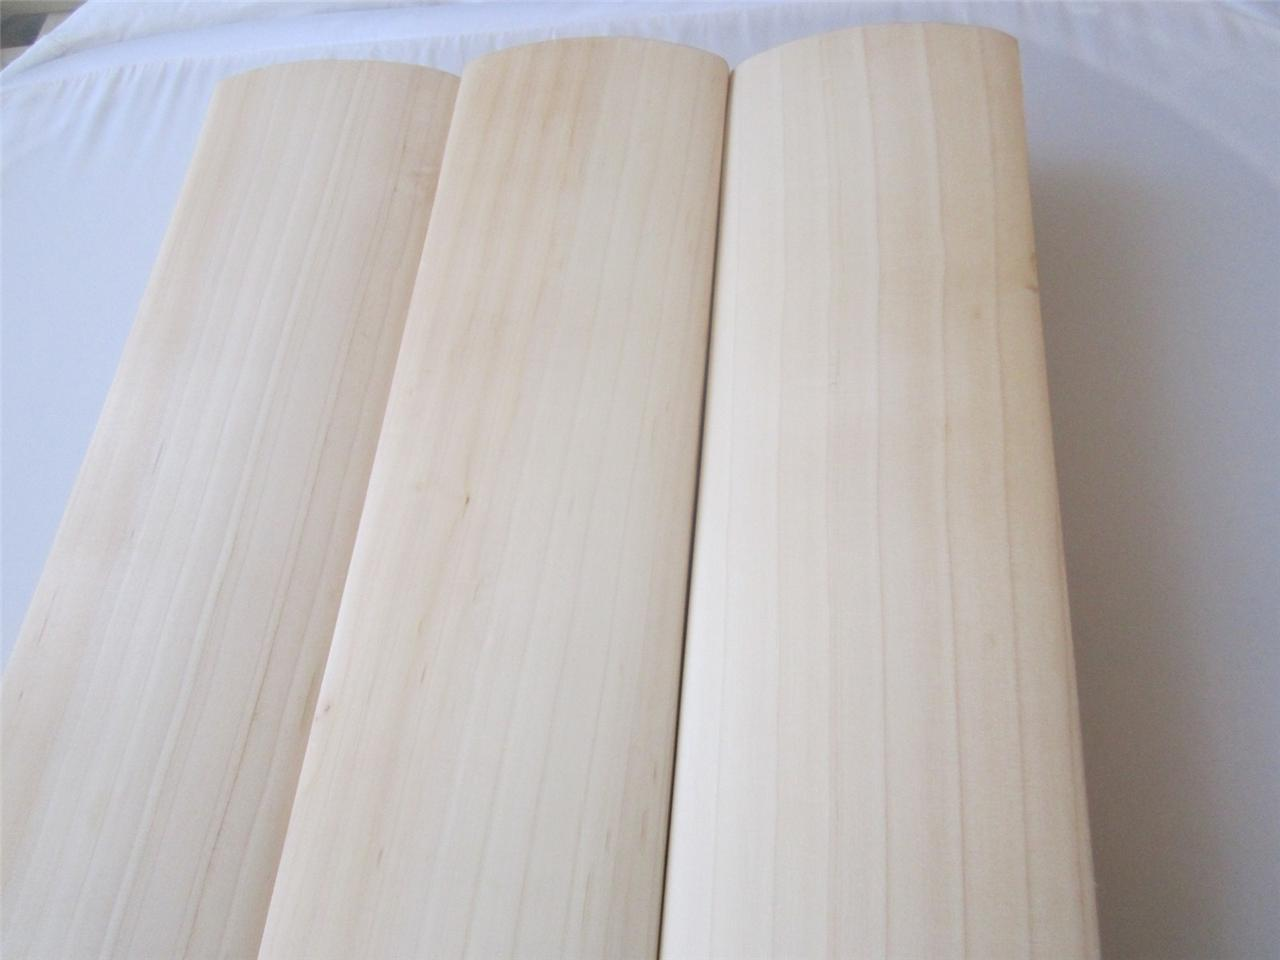 Pro Quality Type A English Willow Cricket Bat Nurtured In The Uk Ebay